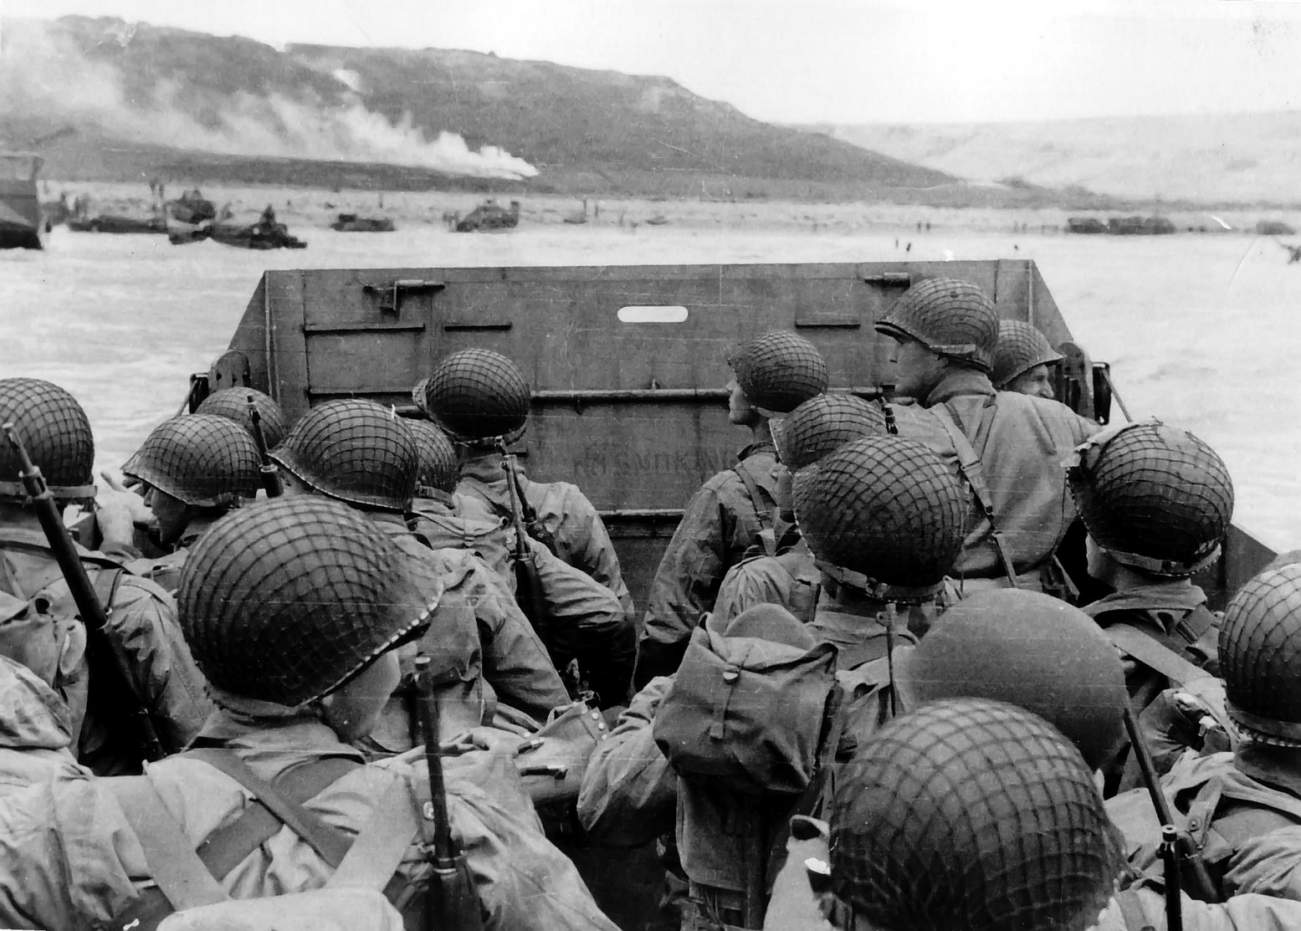 Why Didn't Nazi Germany Use Chemical Warfare During the D-Day Invasion?